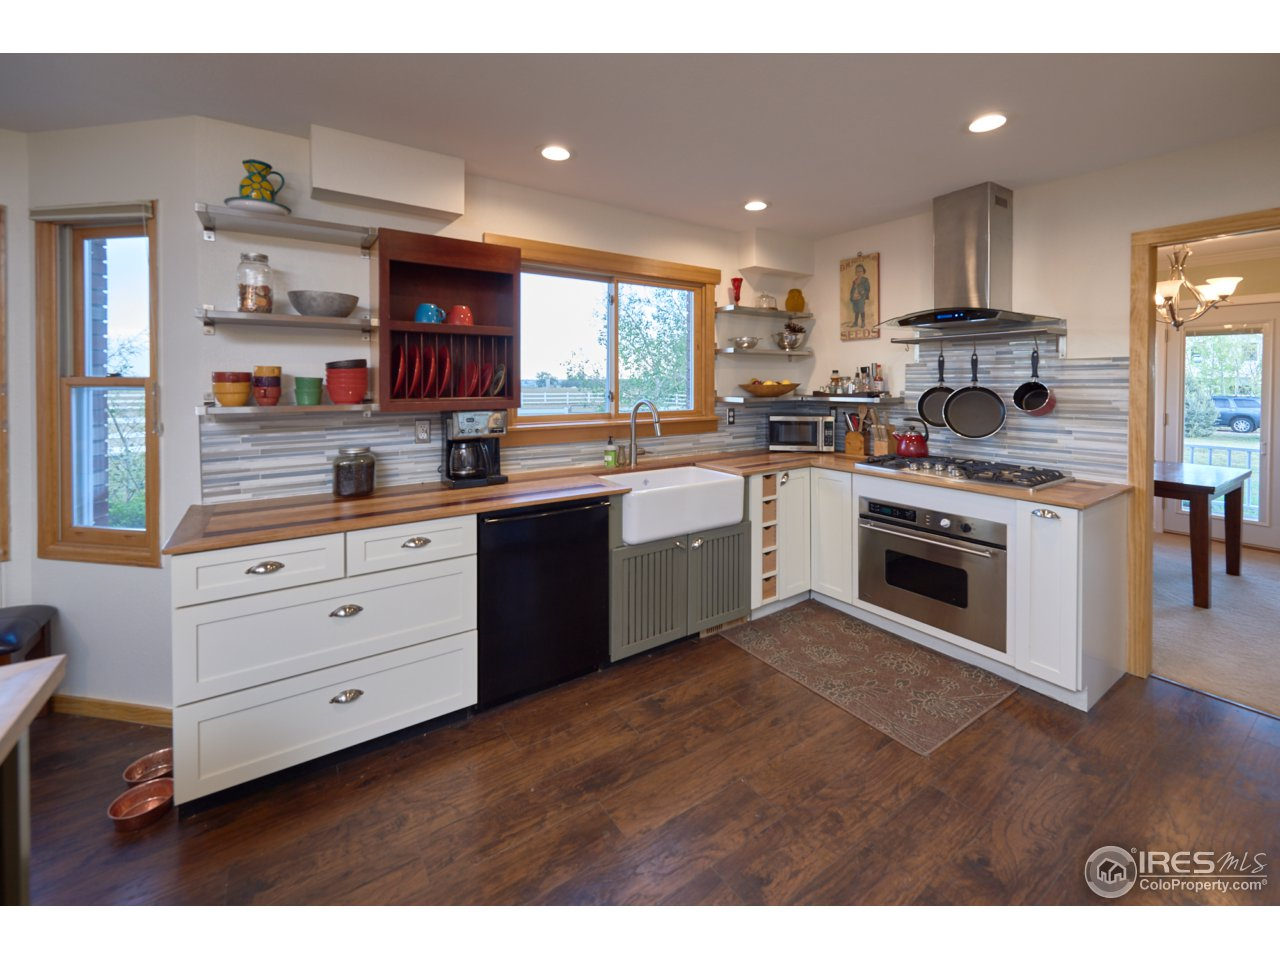 SS appliances and custom wood counter tops